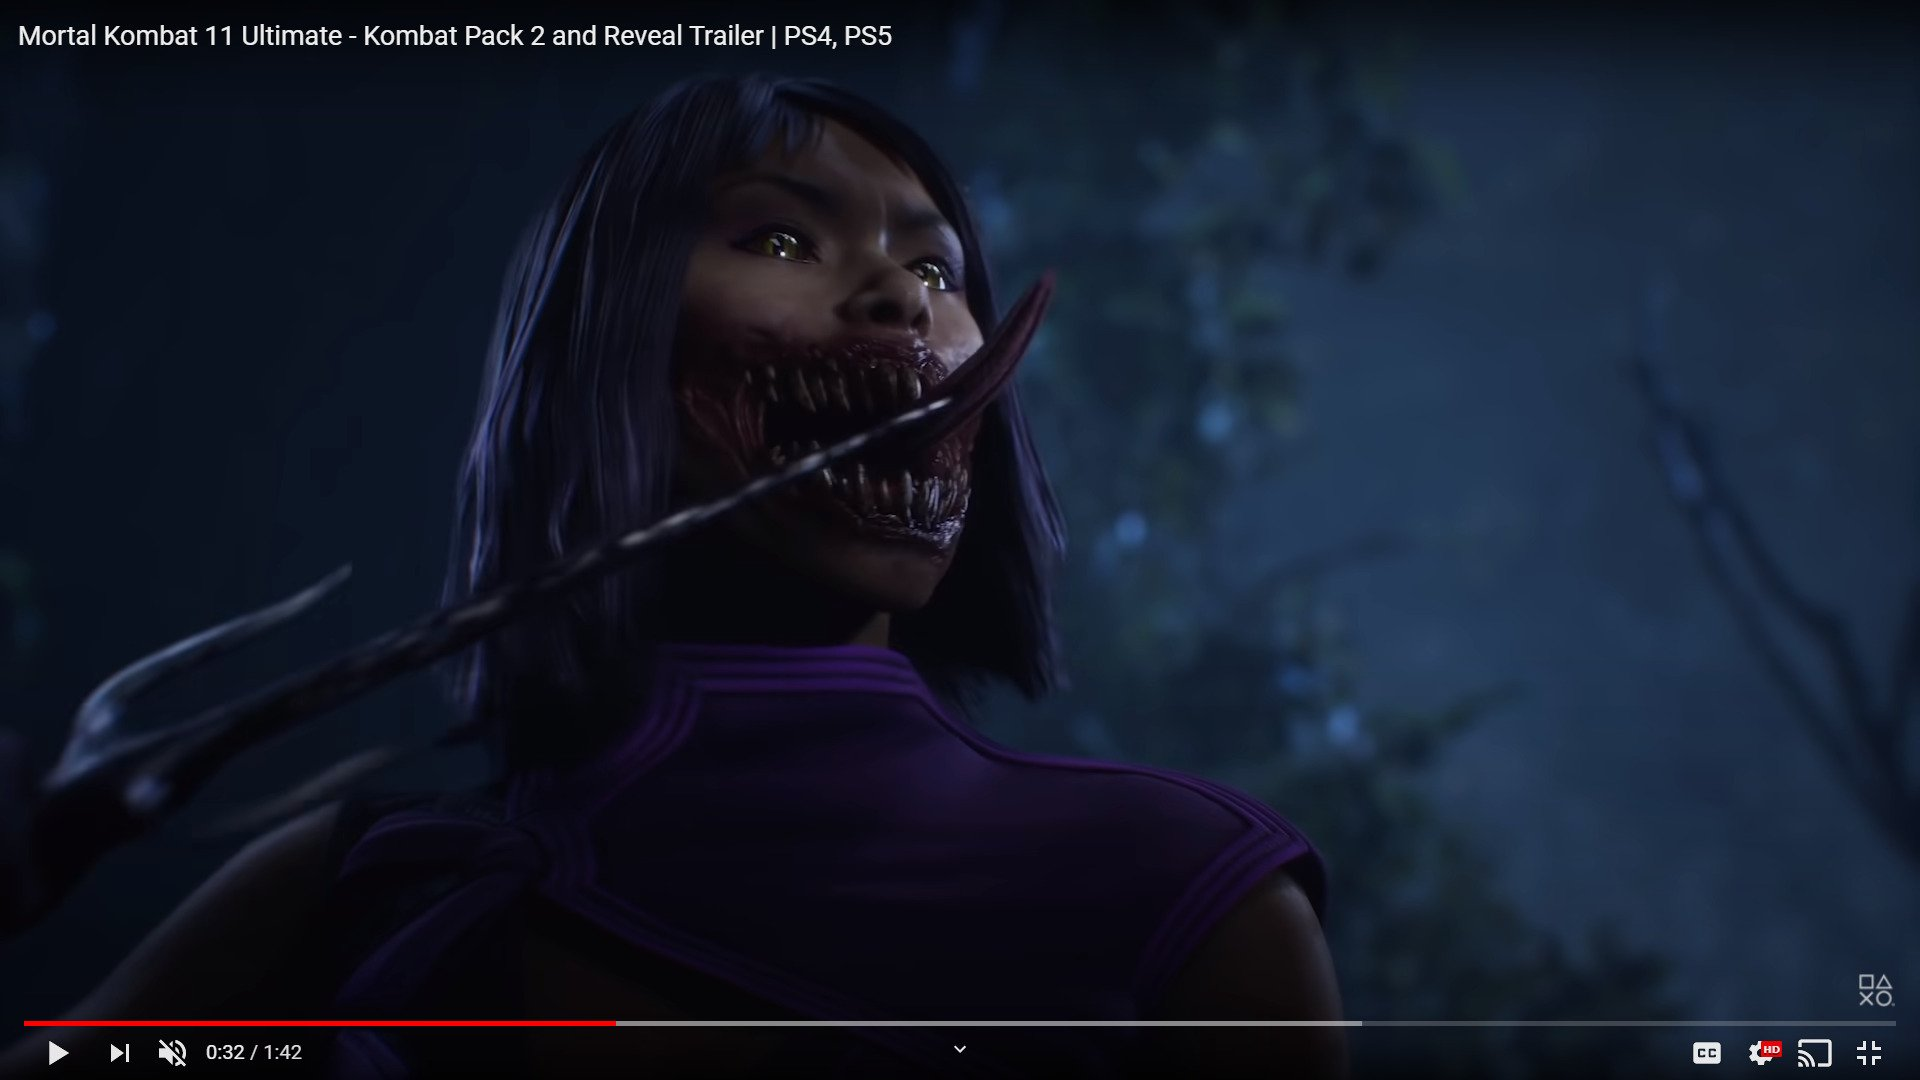 Mortal Kombat 11 Is Finally Adding Mileena To The Playable Character List